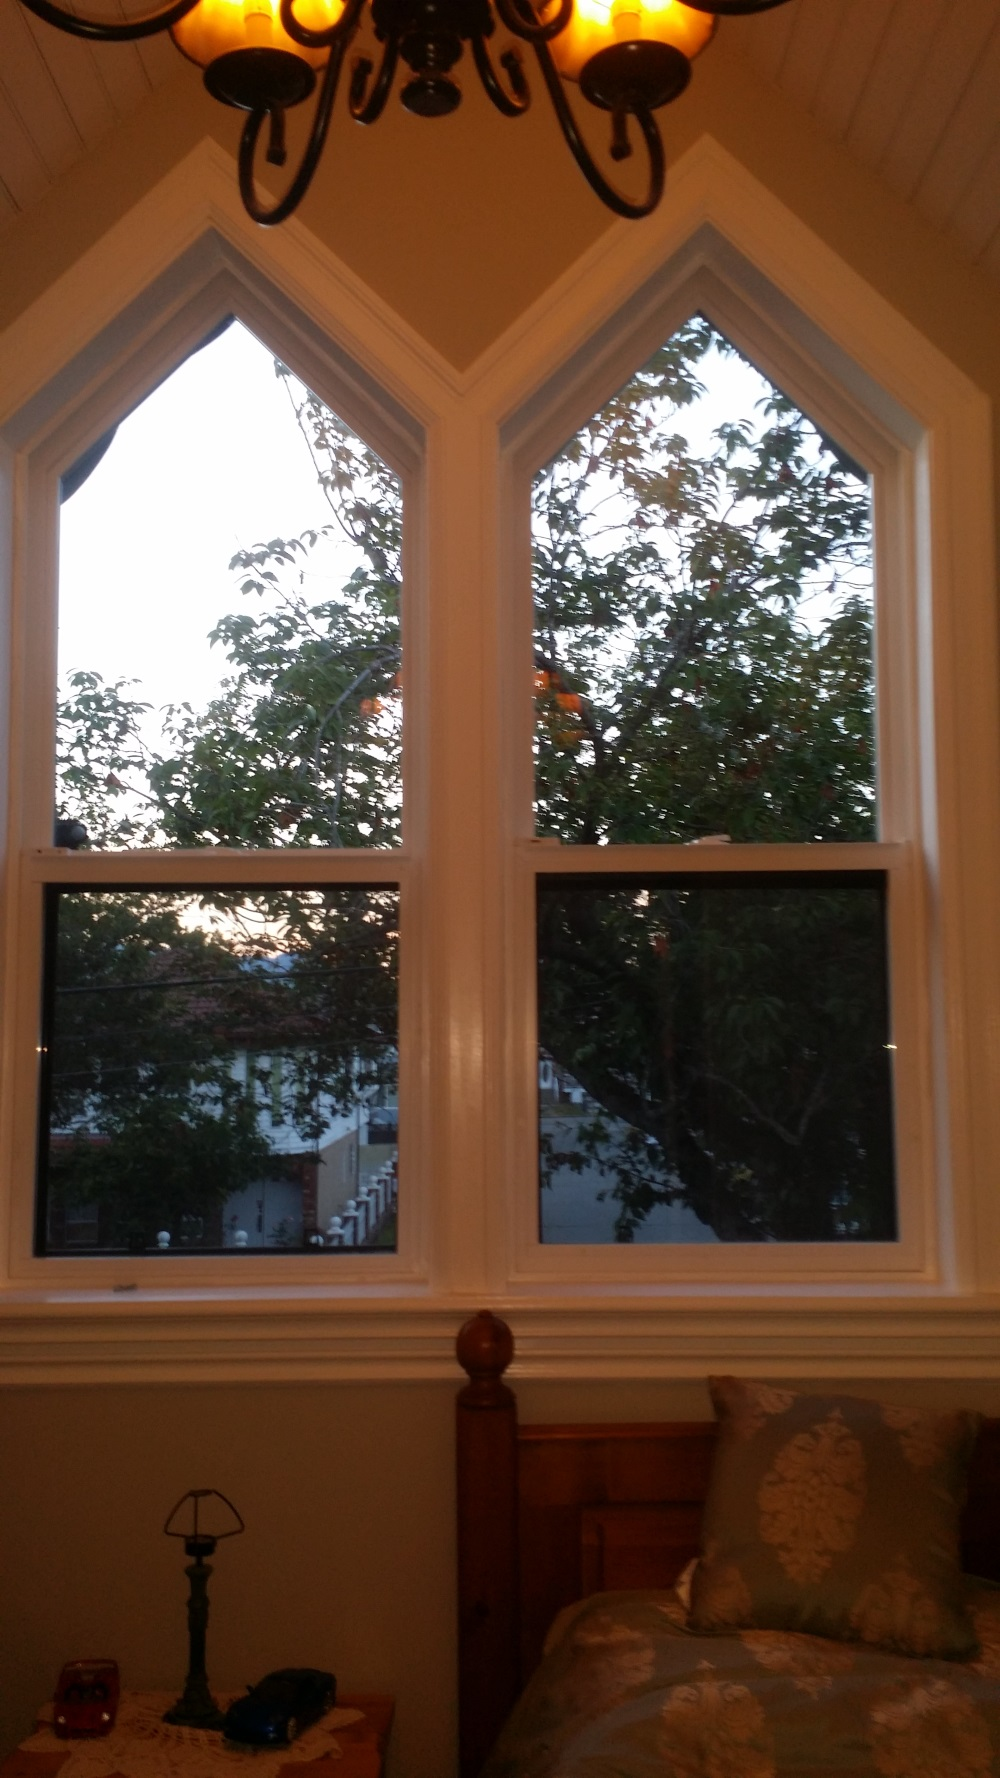 My after work project. Vinyl siding spec house to Victorian Stick Eastlake-20160530_205655.jpg